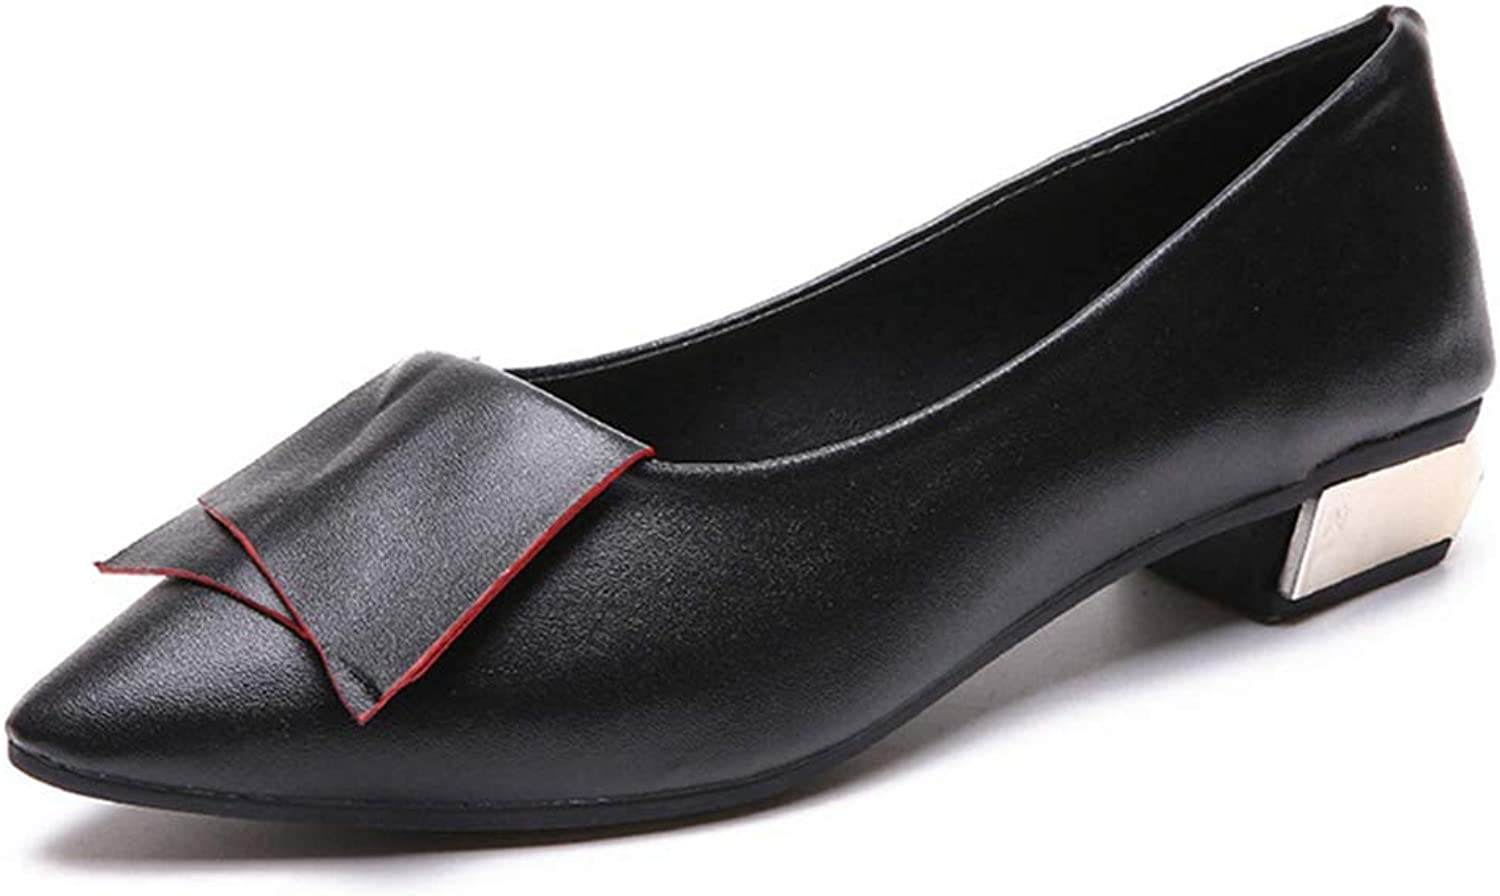 Women's Flats,Chunky Heel Comfortable Fashion Black Red Daily Work shoes